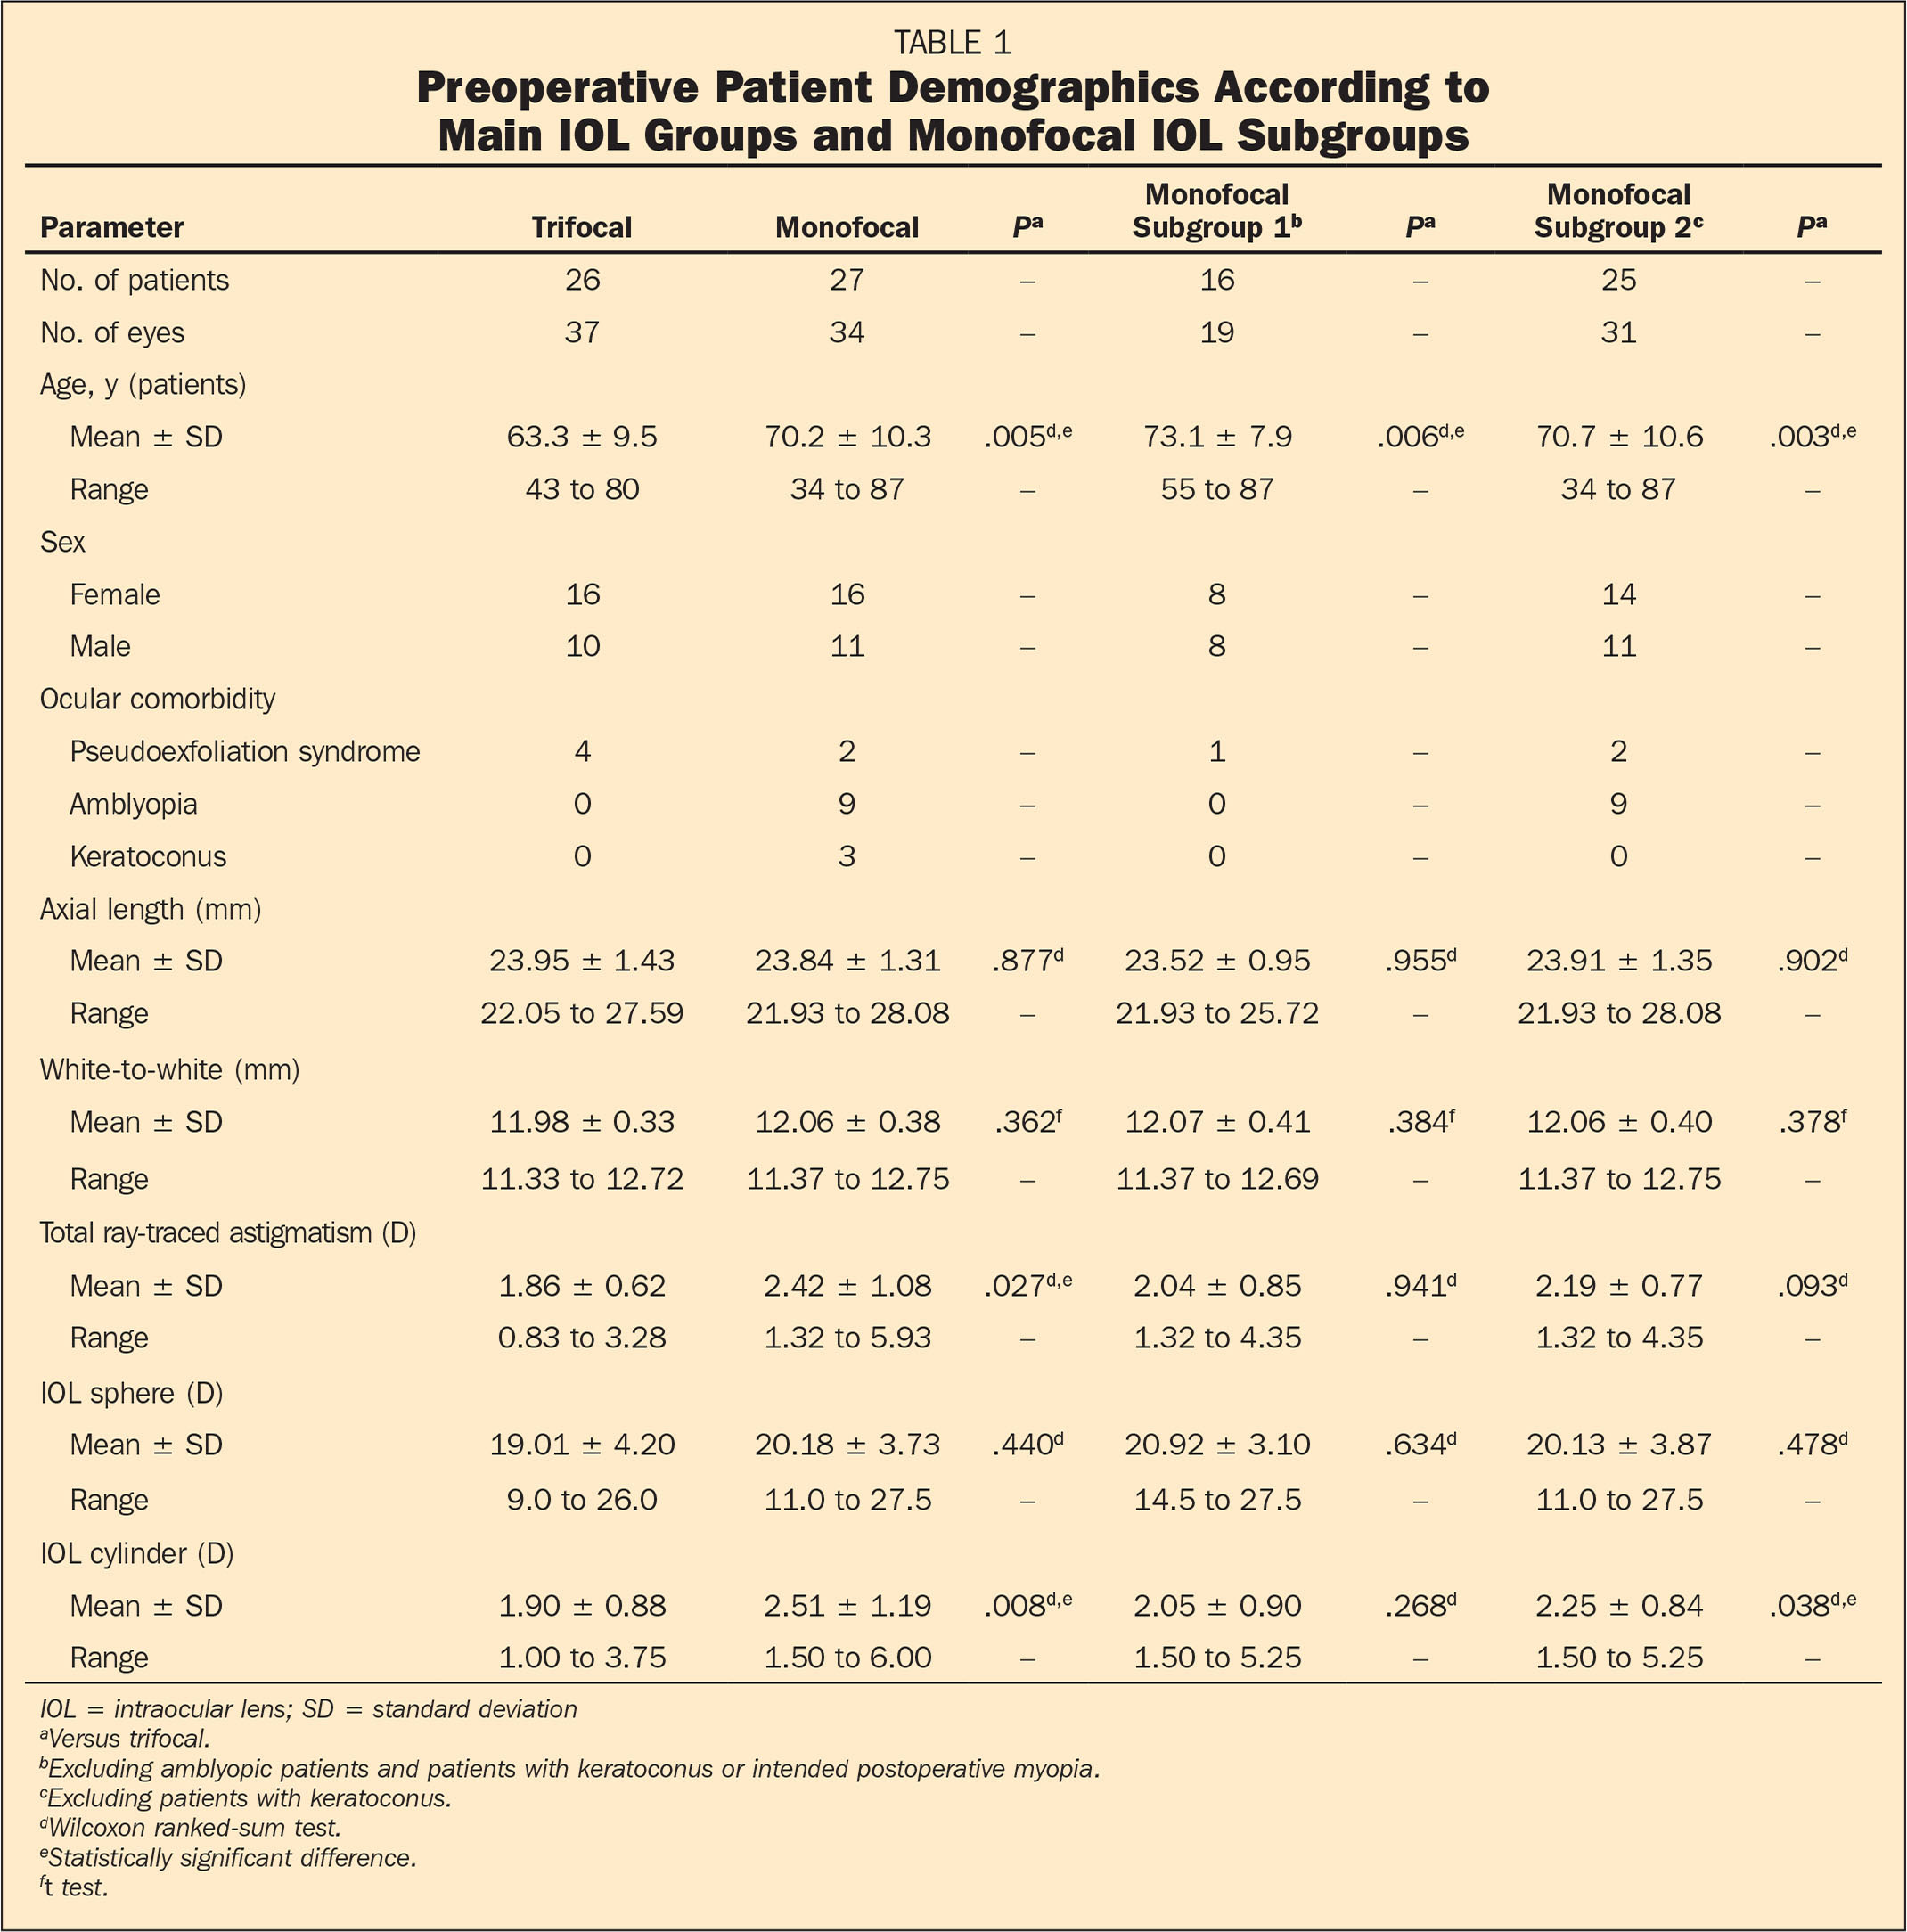 Preoperative Patient Demographics According to Main IOL Groups and Monofocal IOL Subgroups